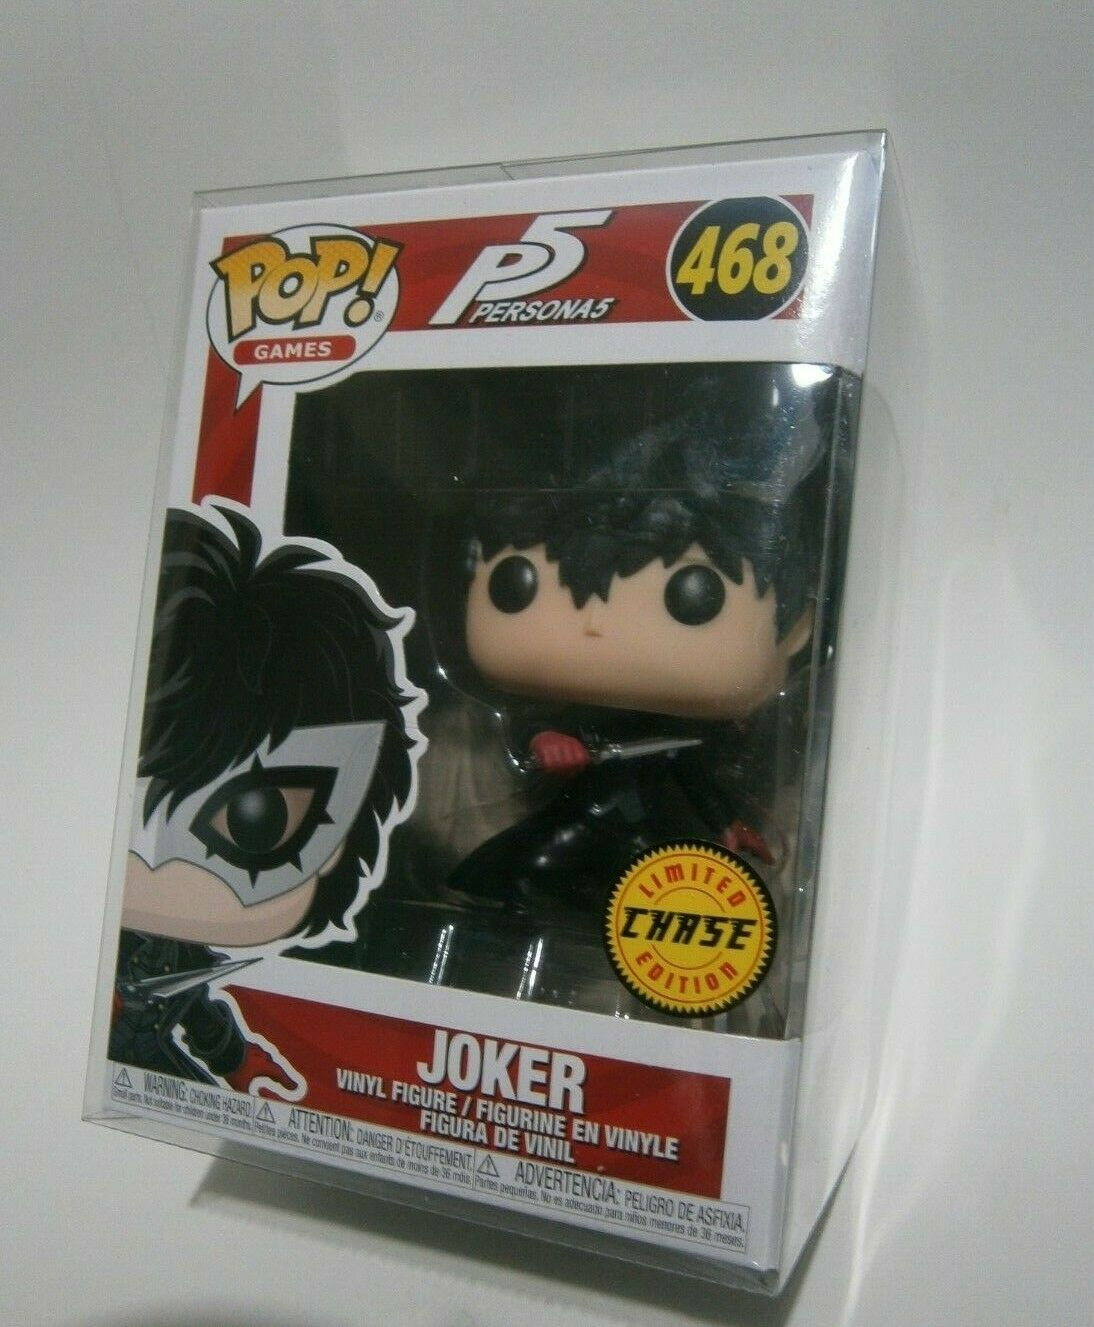 Funko POP  Games  Persona 5 - The Joker (Unmasked) CHASE  468  w Soft Protector